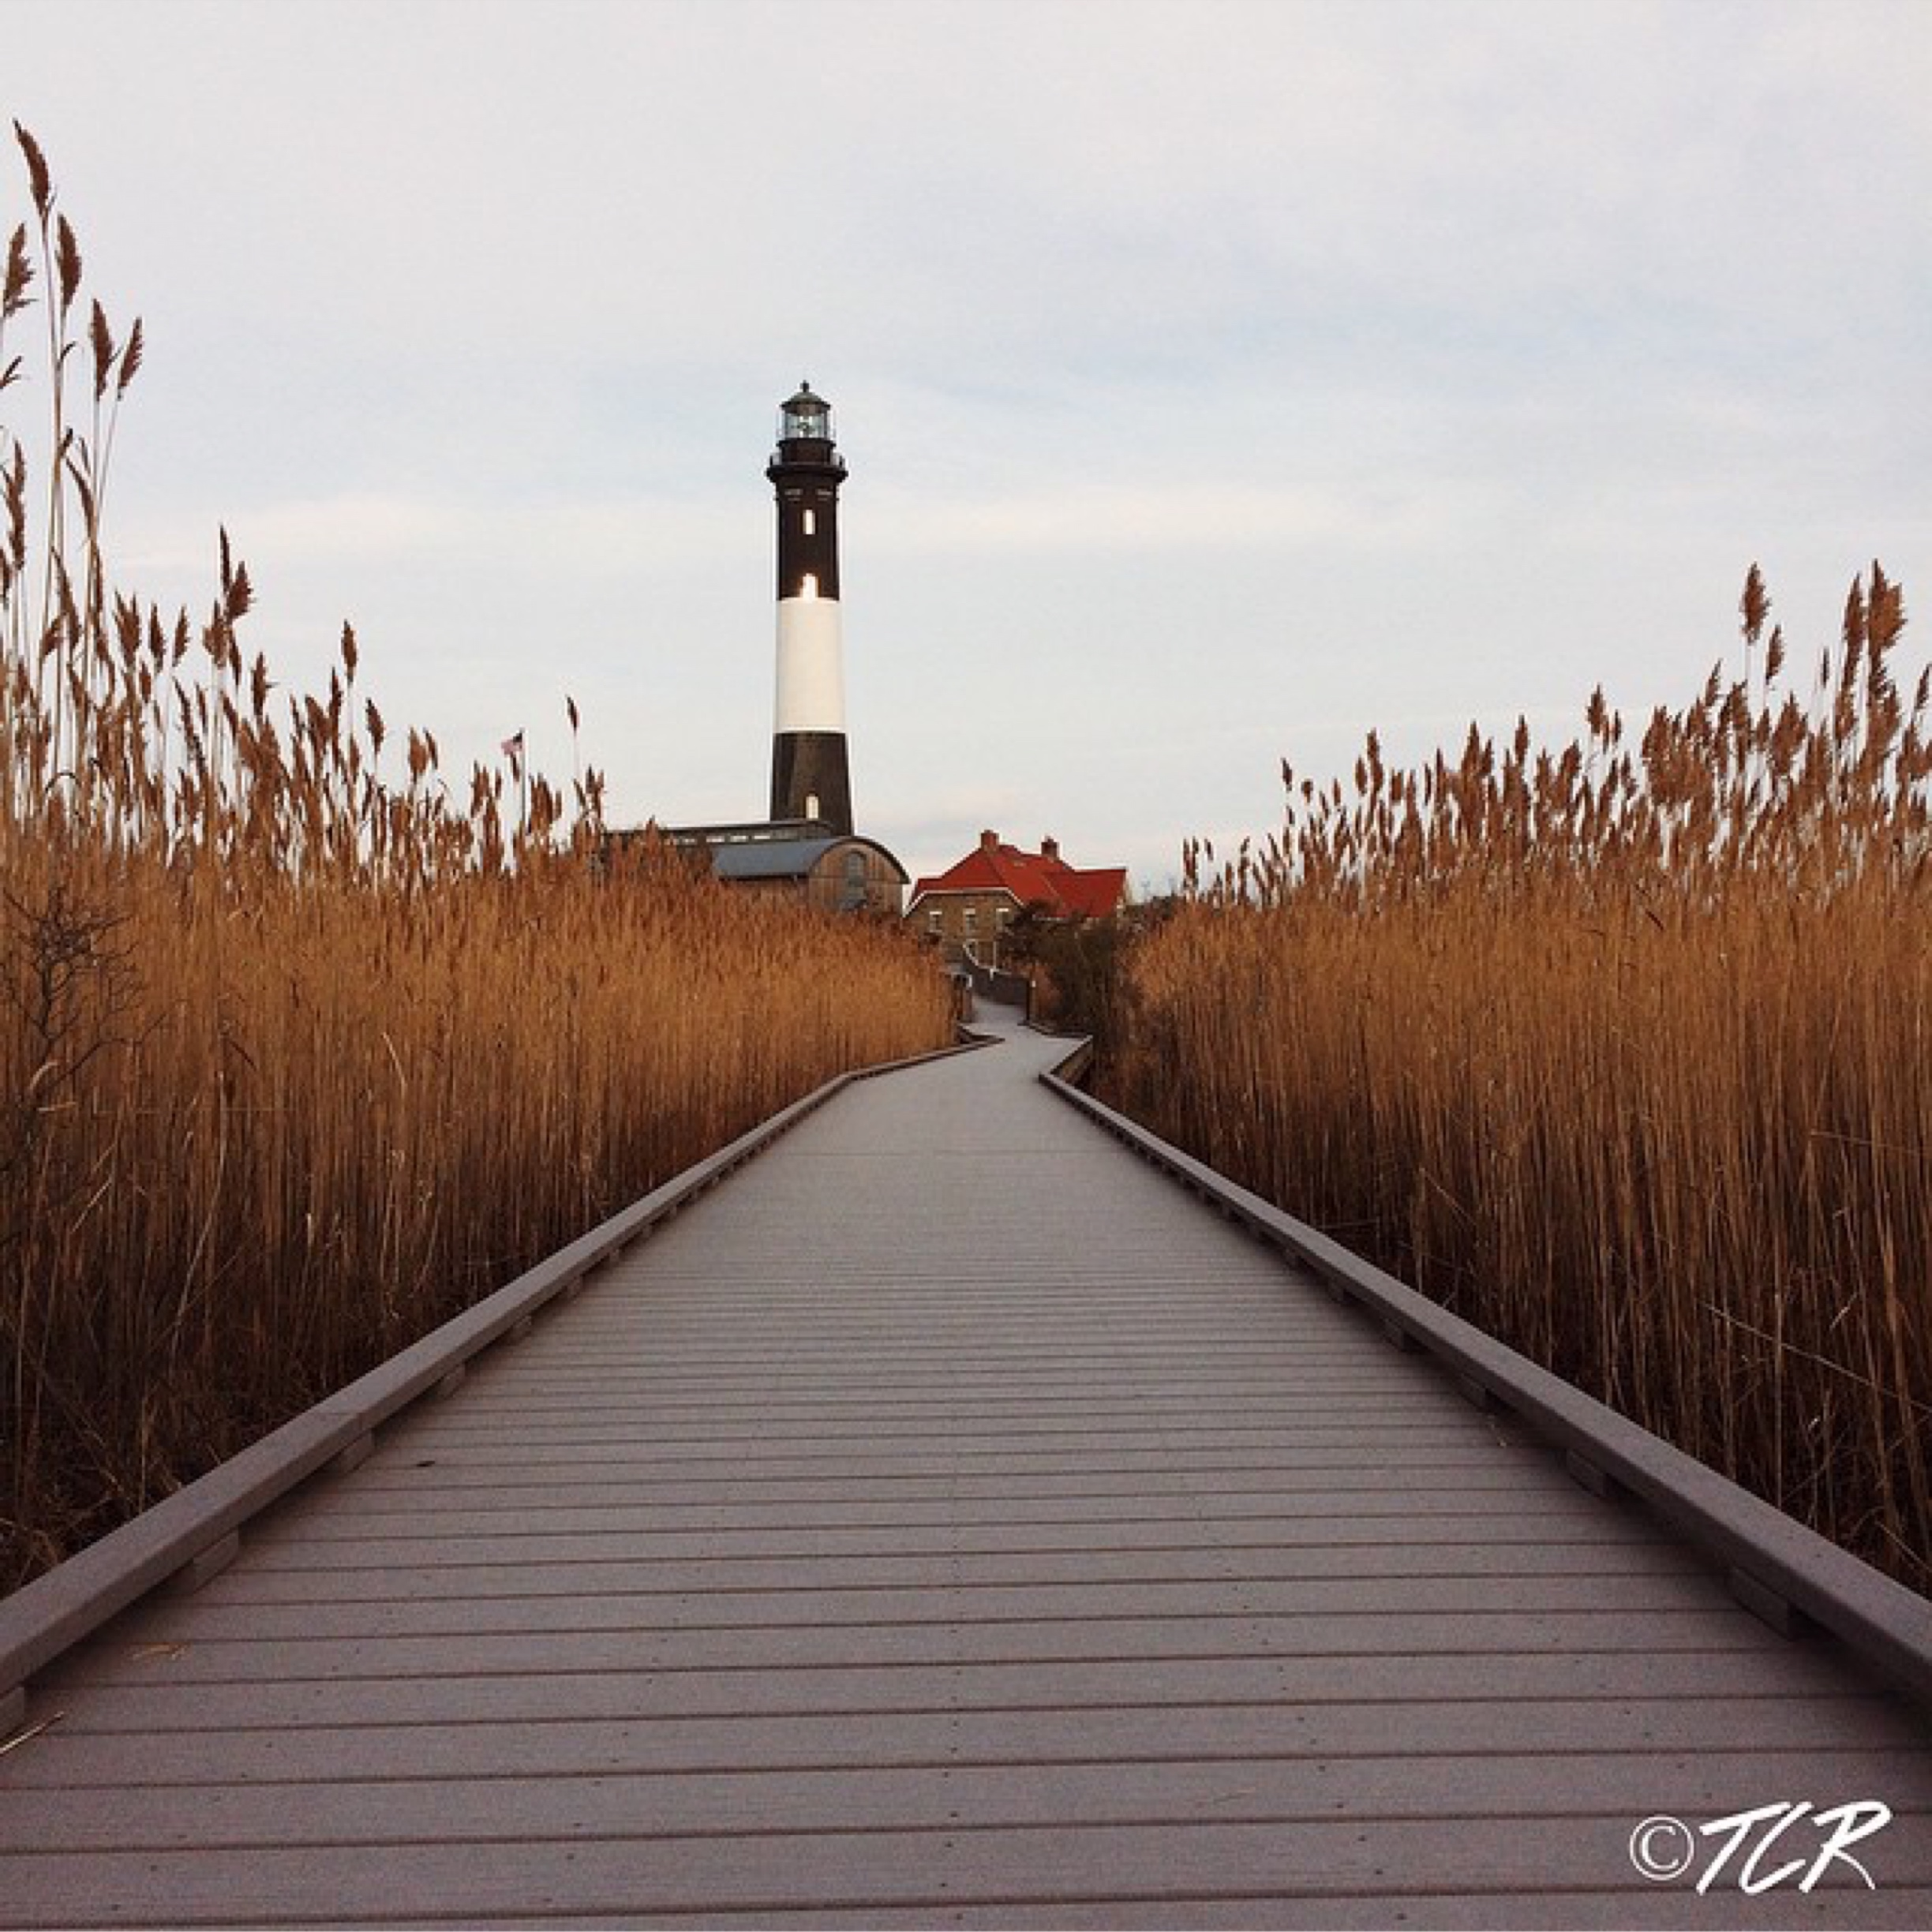 Long Island photographer Tom Reuter snapped this image of the Fire Island Lighthouse with his iPhone 6 camera. (Credit Tom Reuter/https://instagram.com/treuter18)